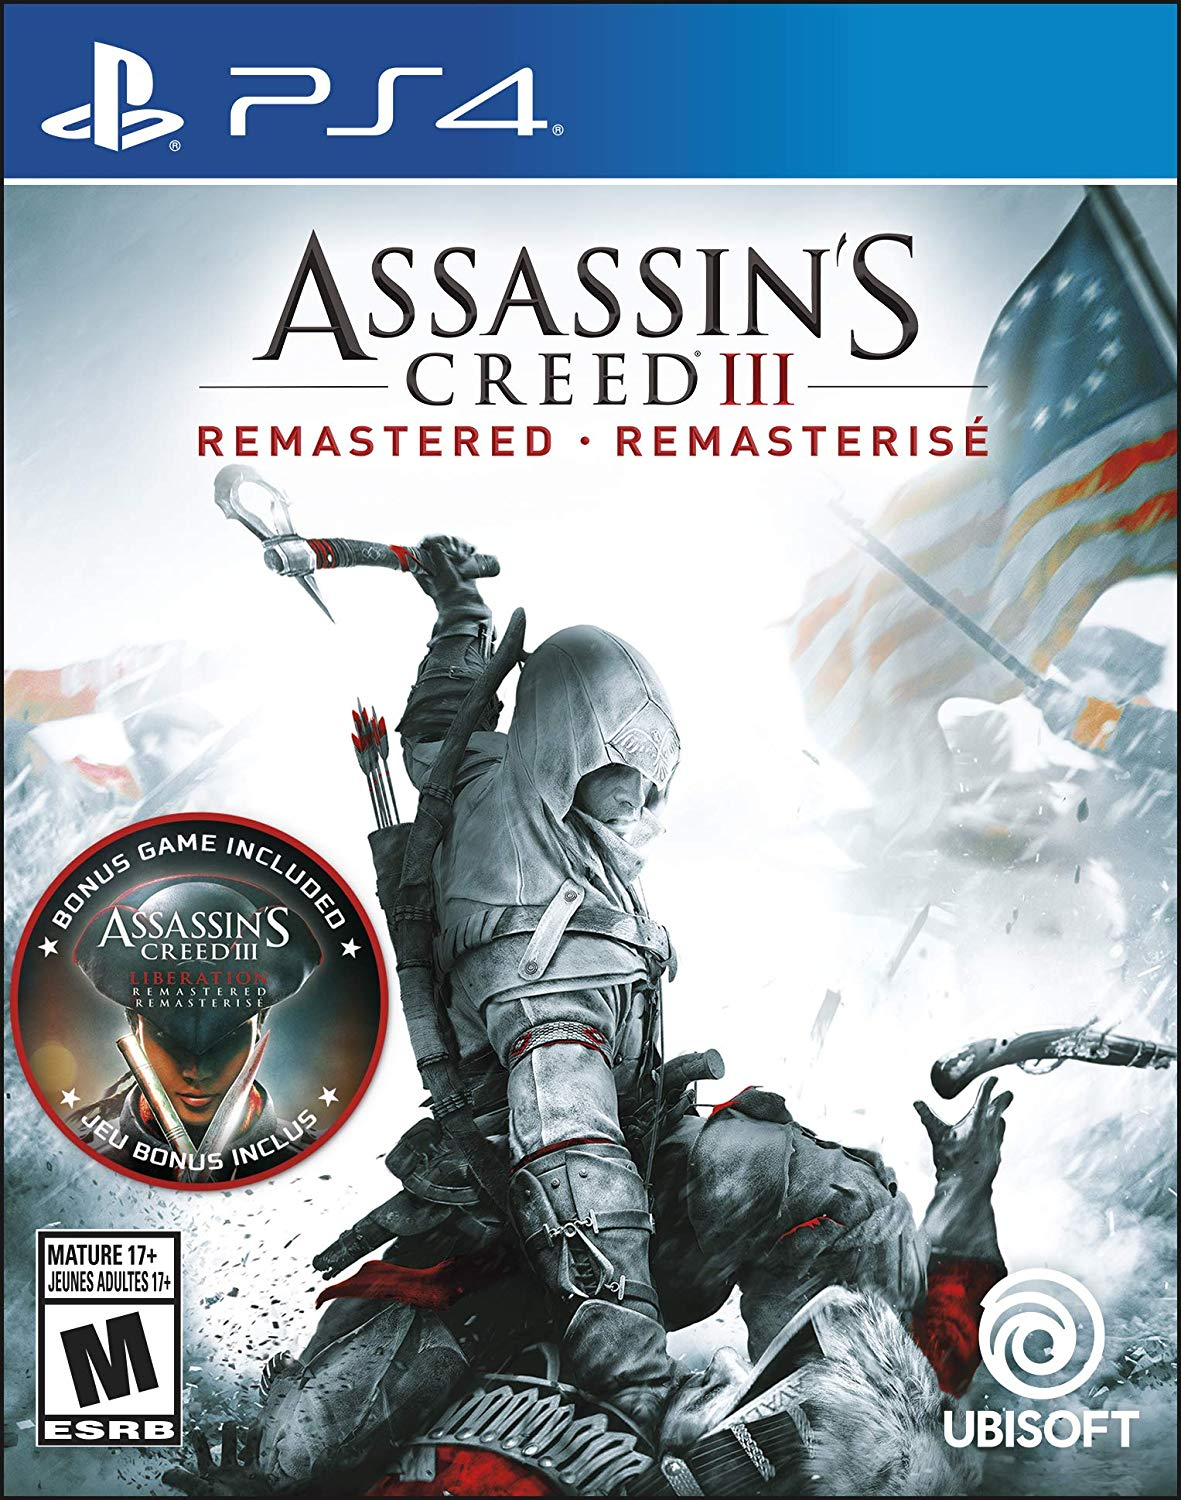 PS4 Assassin's Creed III: Remastered